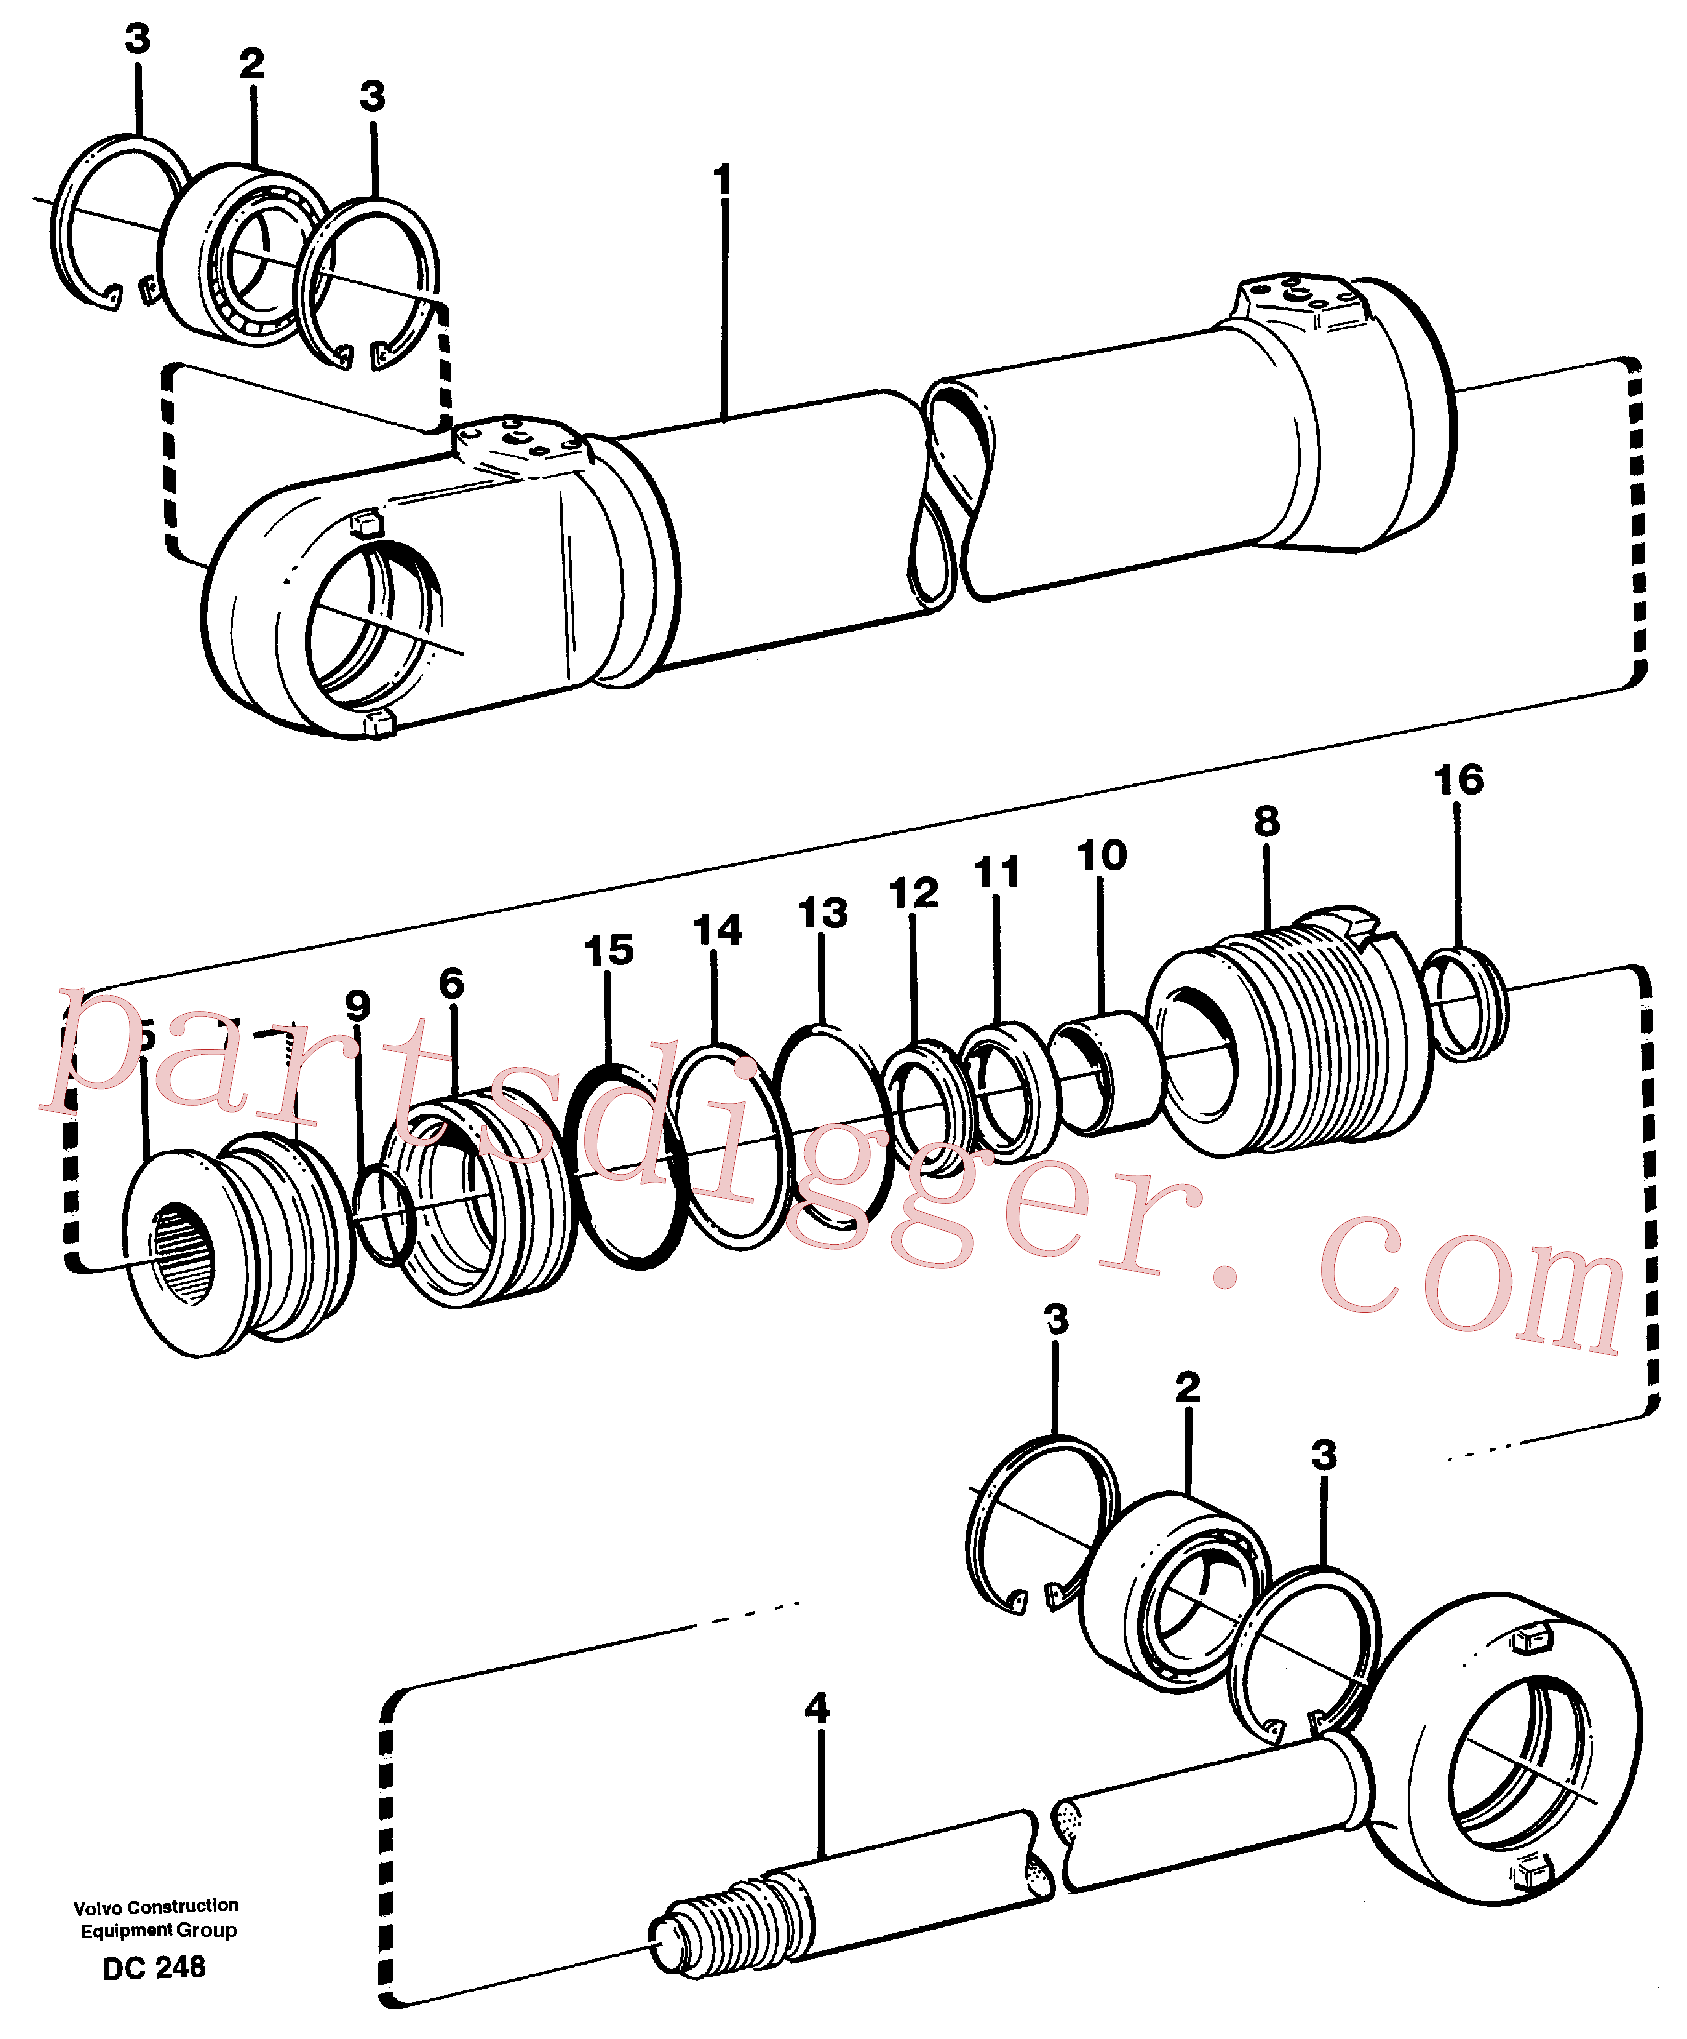 VOE11704136 for Volvo Hydraulic cylinder(DC248 assembly)